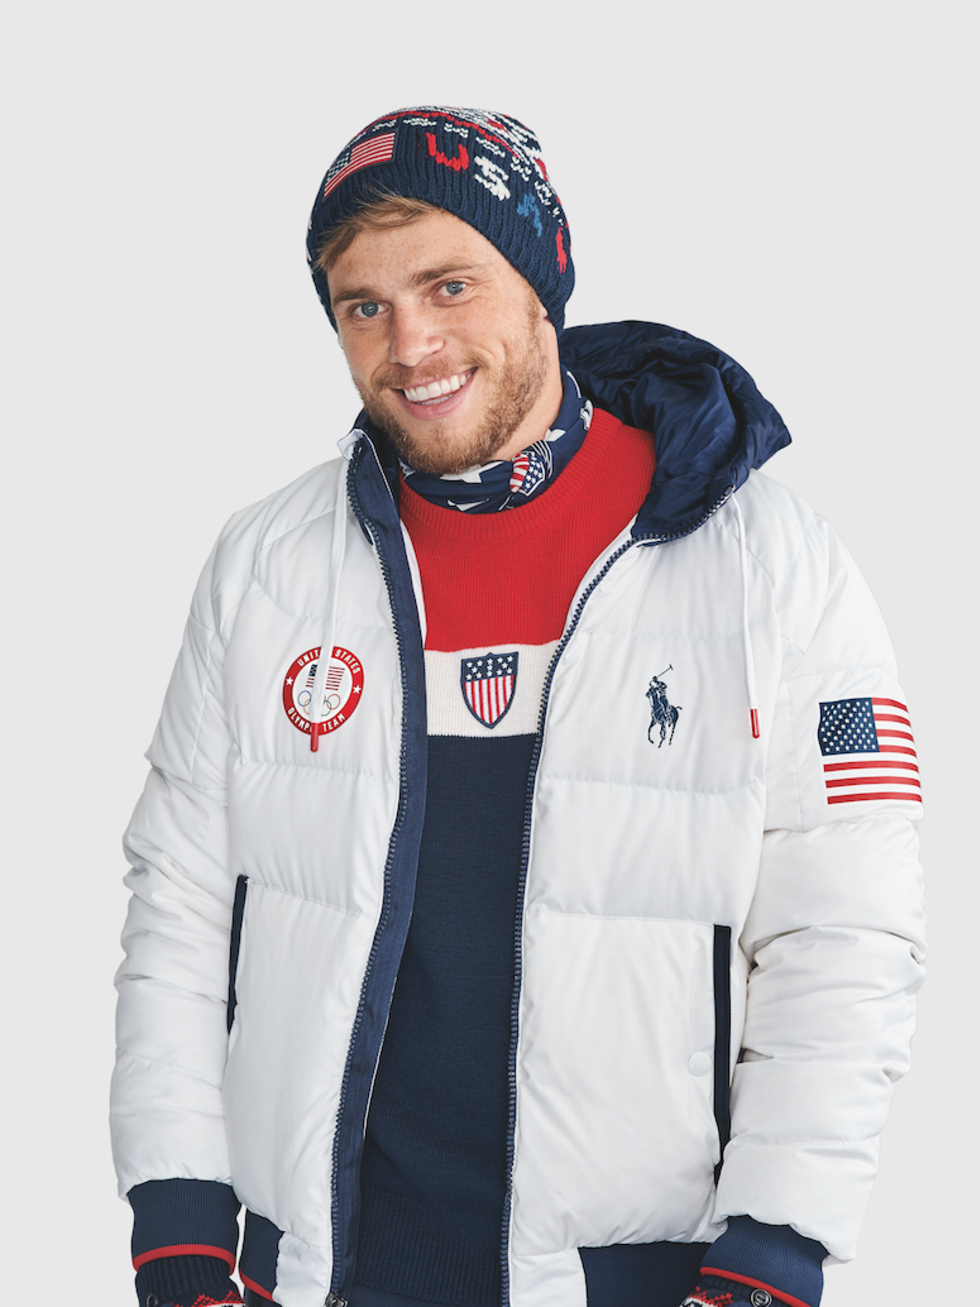 Gus Kenworthy Winter Olympics 2018 Ralph Lauren closing ceremony outfits